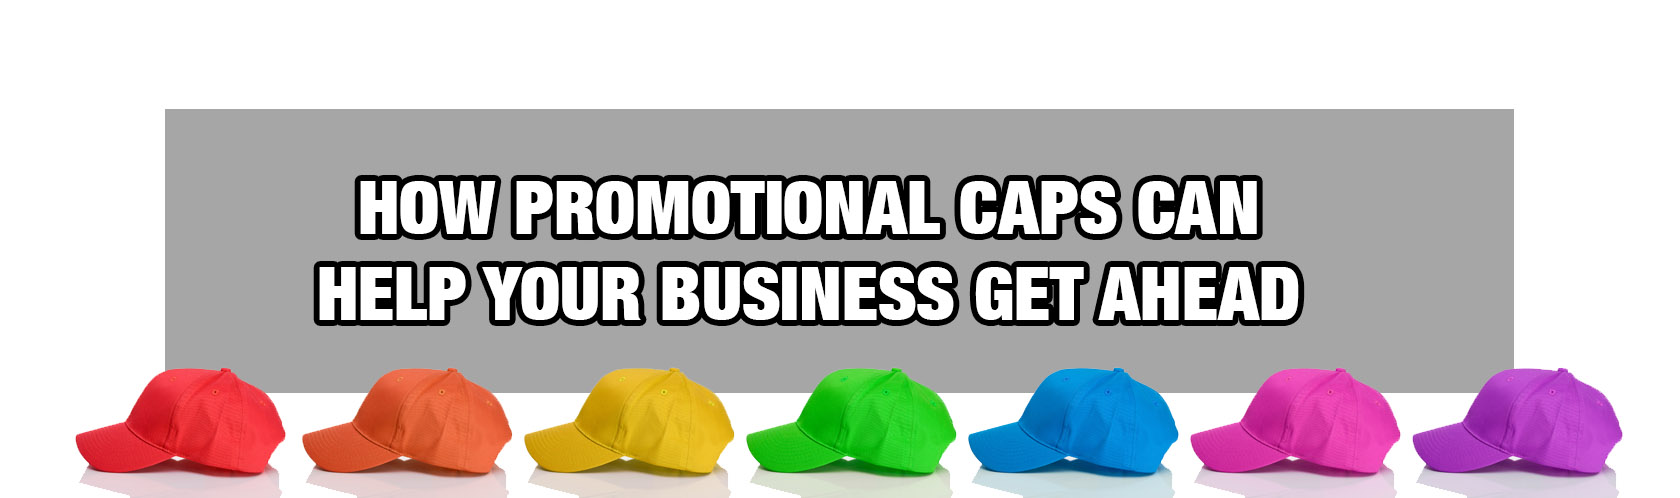 How Promotional Caps Can Help Your Business Get Ahead